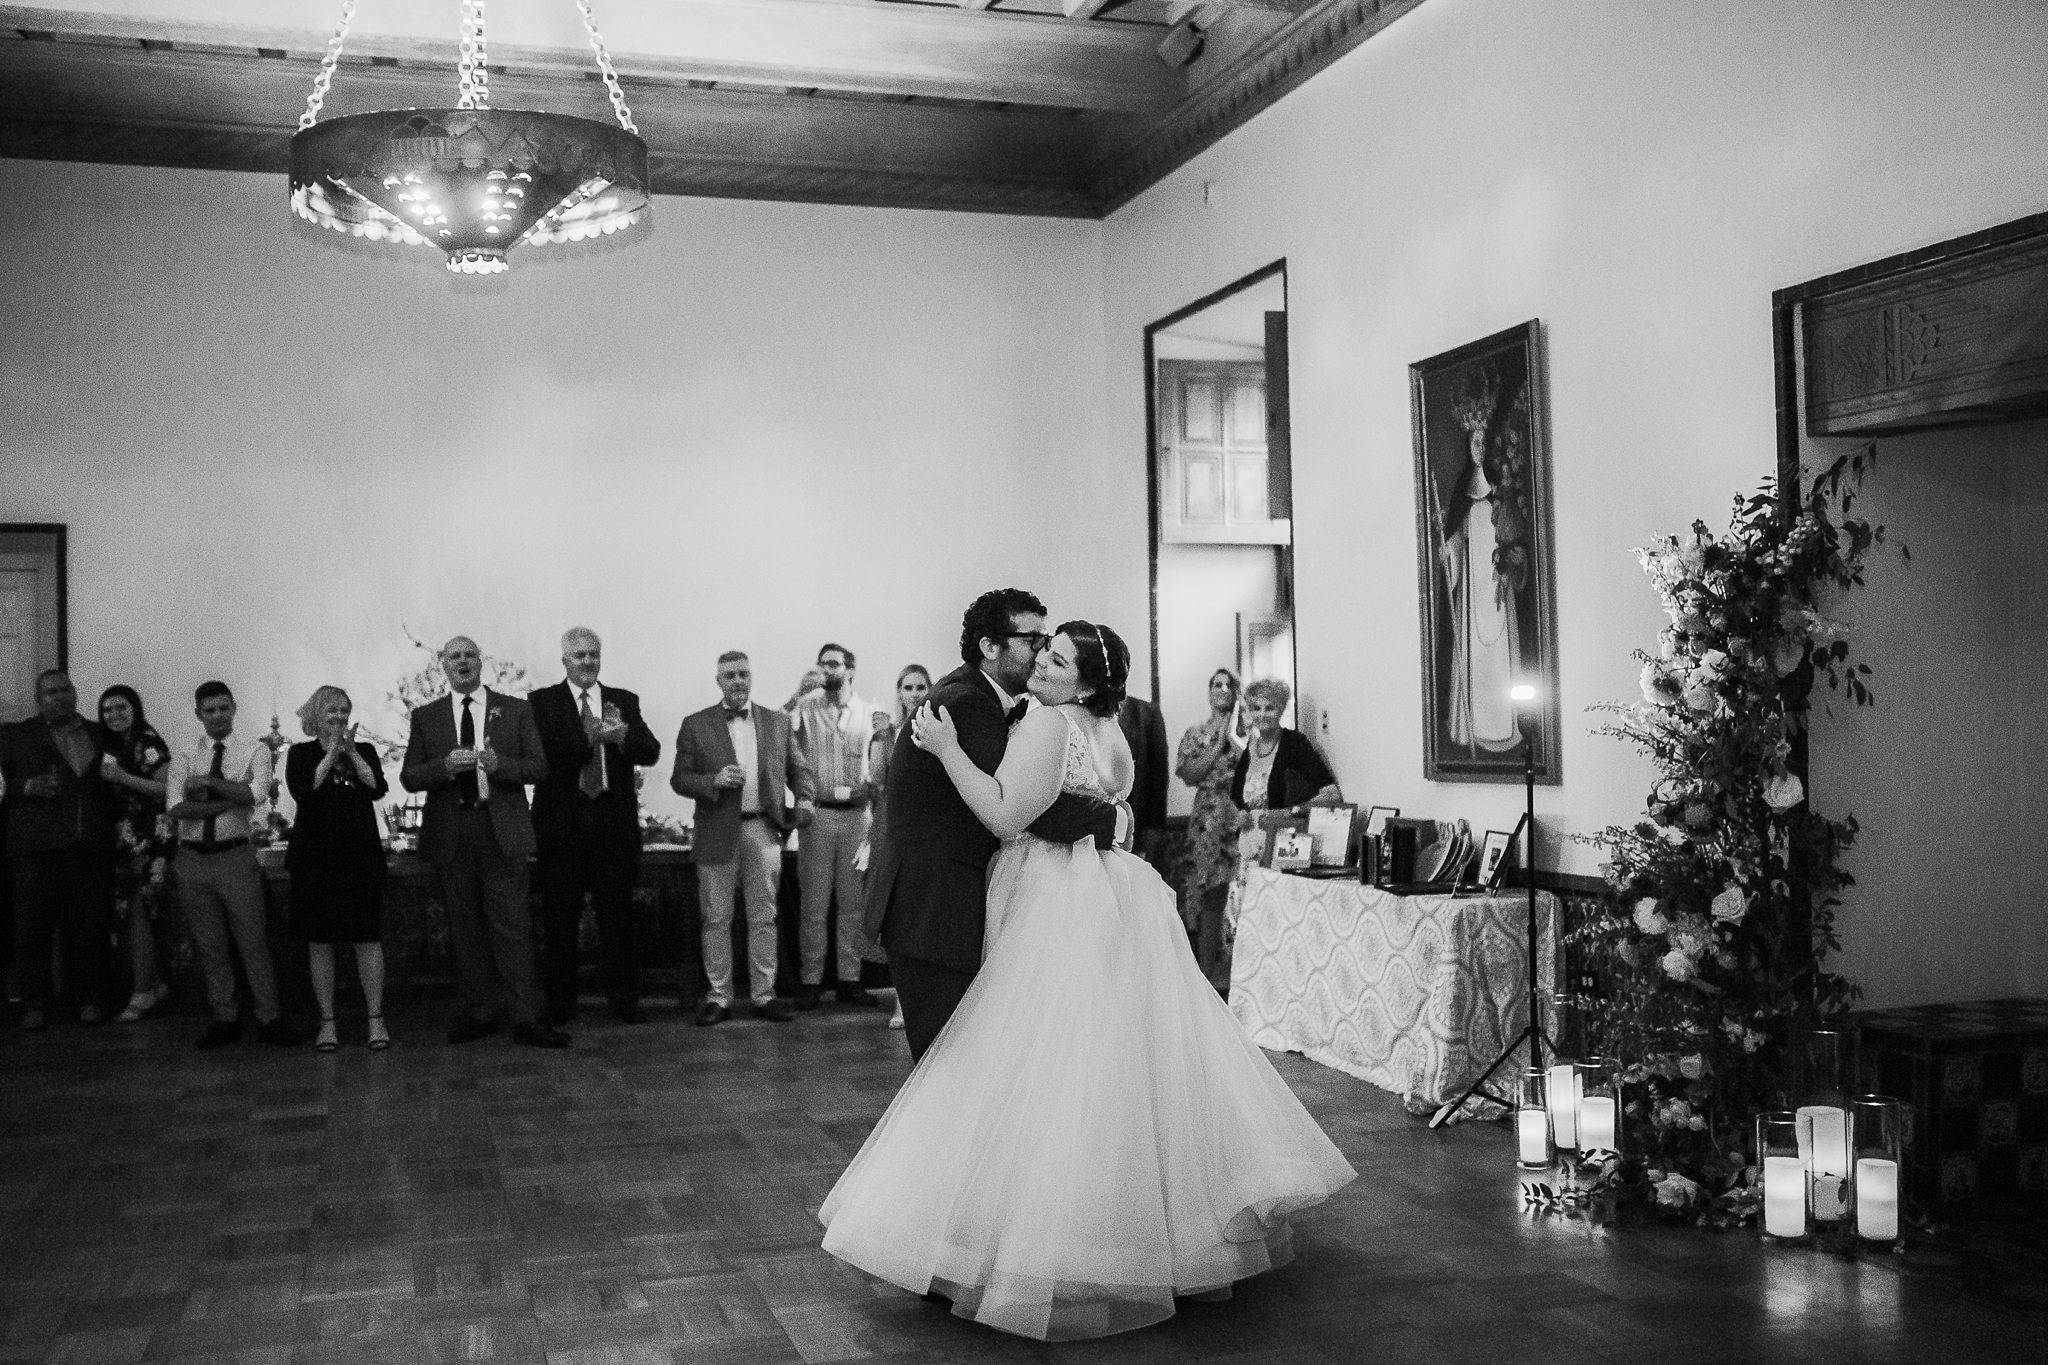 Alicia+lucia+photography+-+albuquerque+wedding+photographer+-+santa+fe+wedding+photography+-+new+mexico+wedding+photographer+-+new+mexico+wedding+-+summer+wedding+-+los+poblanos+wedding+-+albuquerque+wedding_0099.jpg